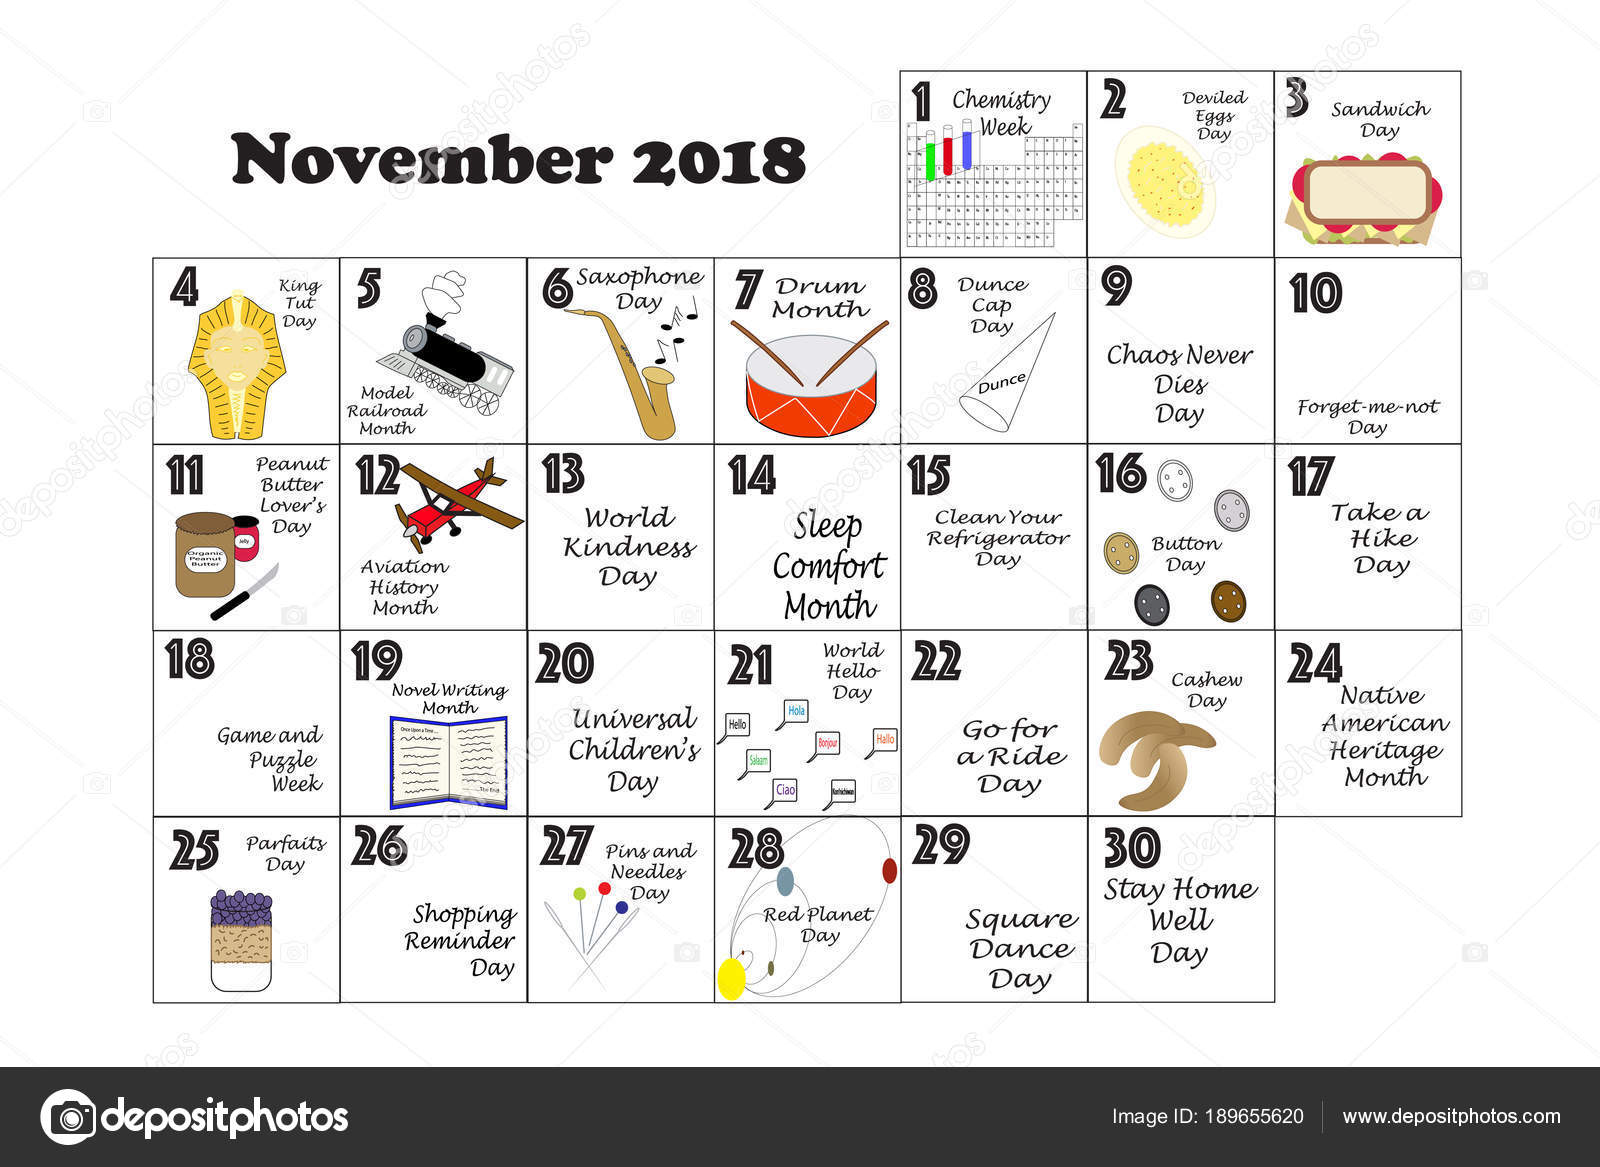 November Quirky Holidays And Unusual Events